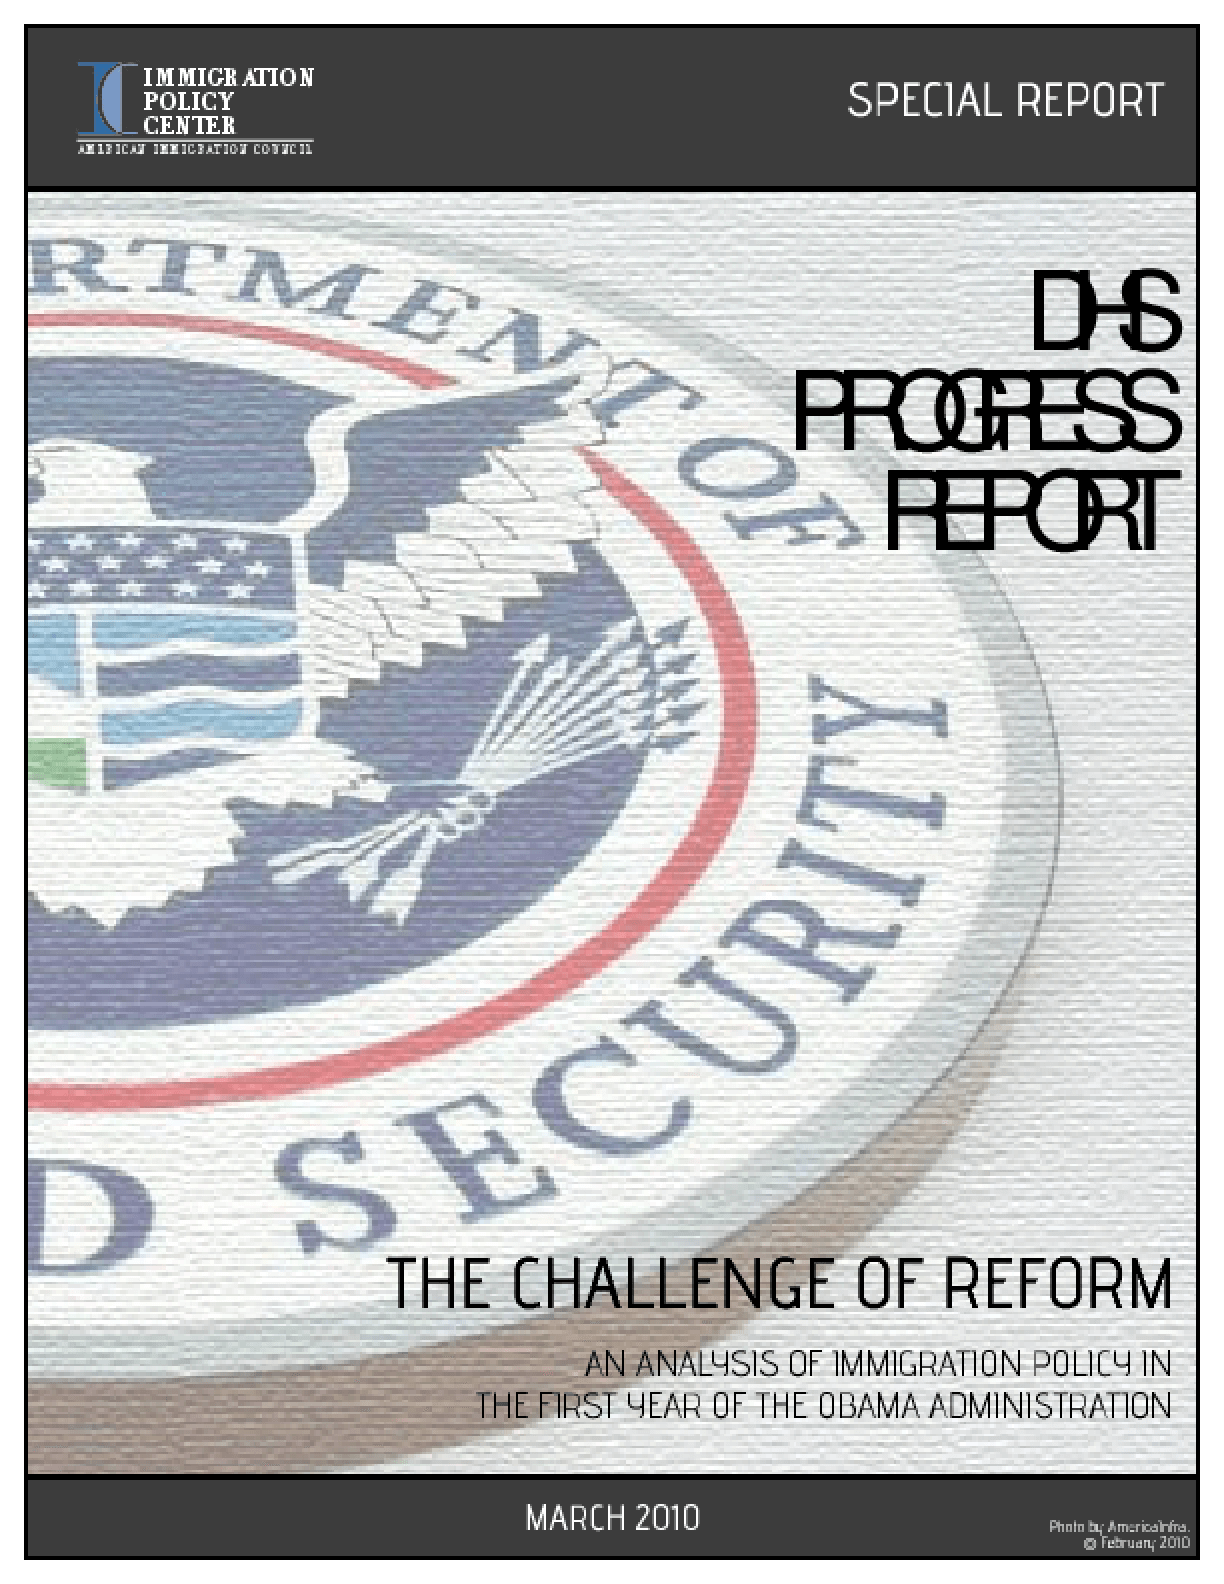 DHS Progress Report: The Challenge of Reform